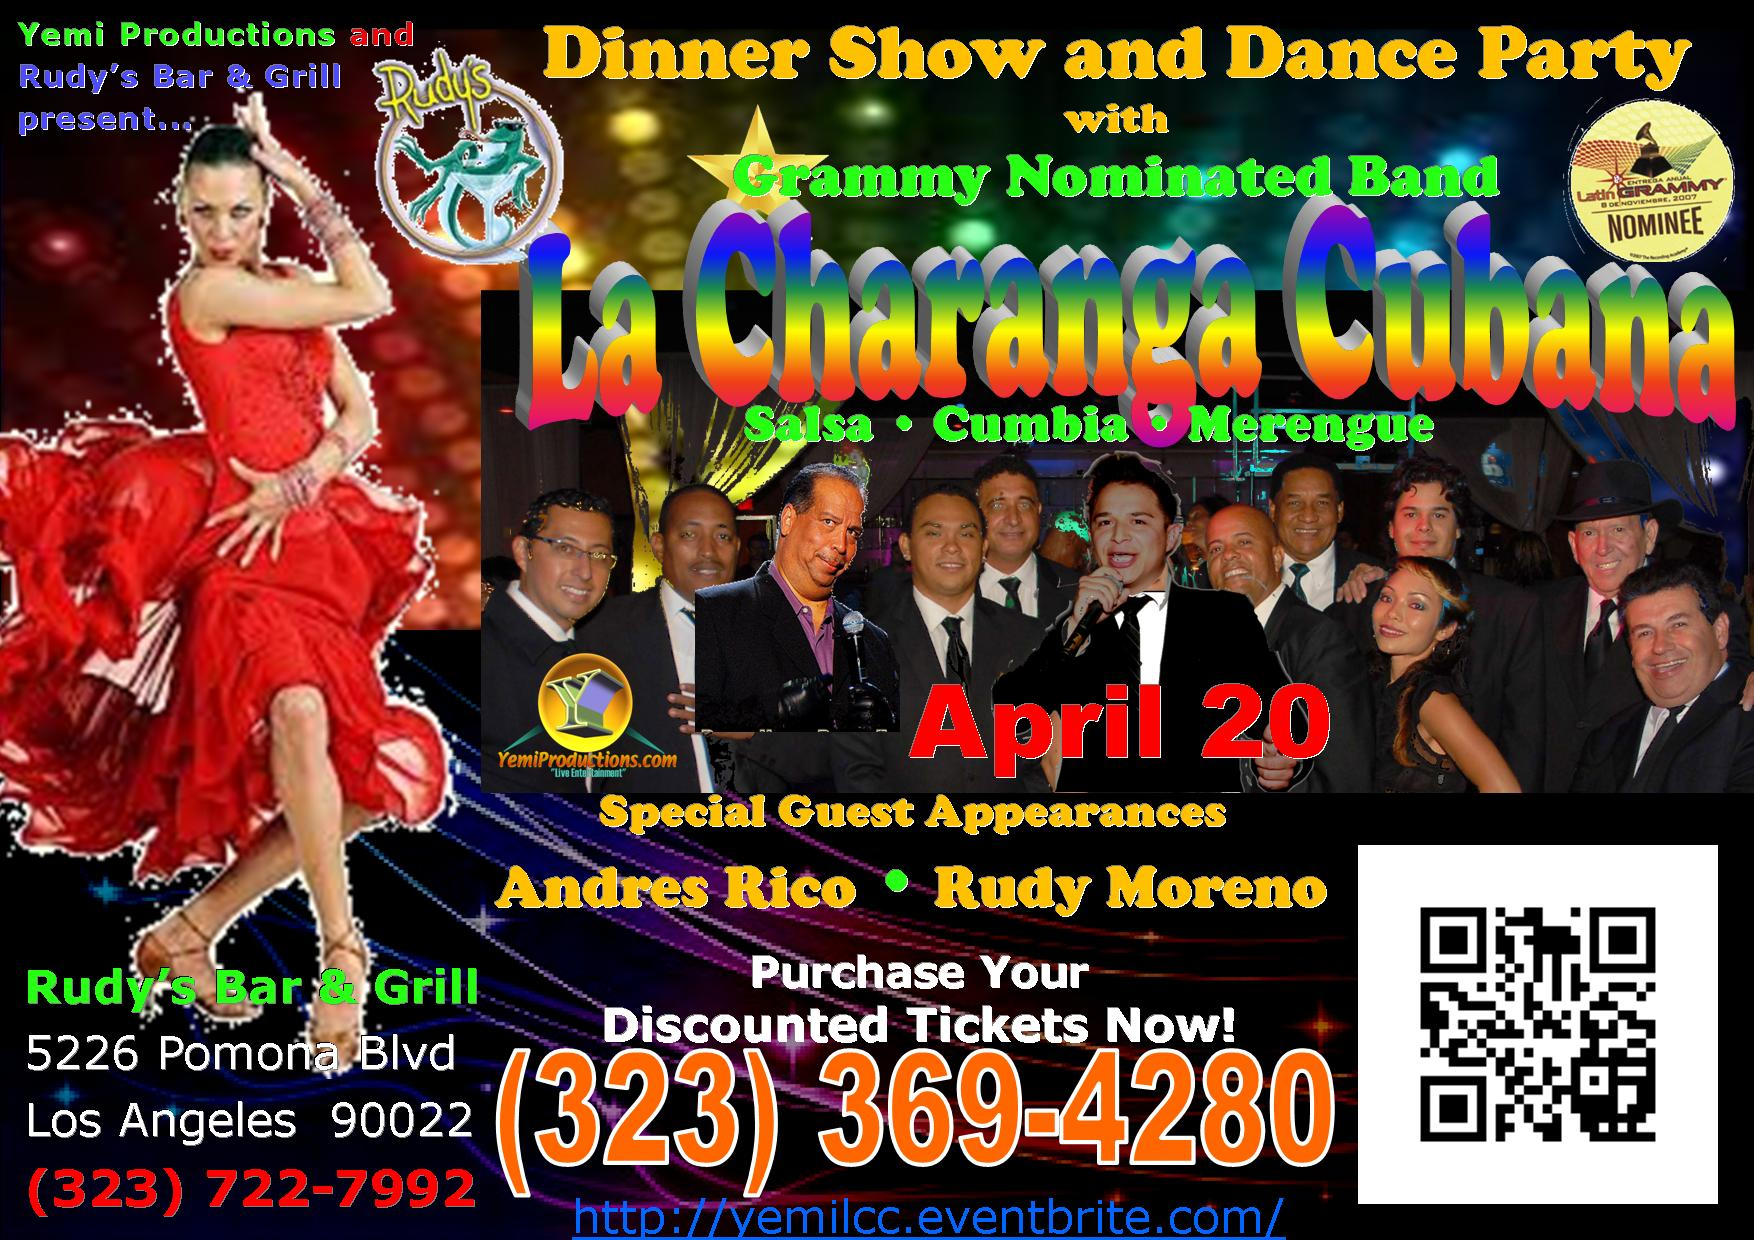 Salsa Dance Event @Rudy's With La Charanga Cubana